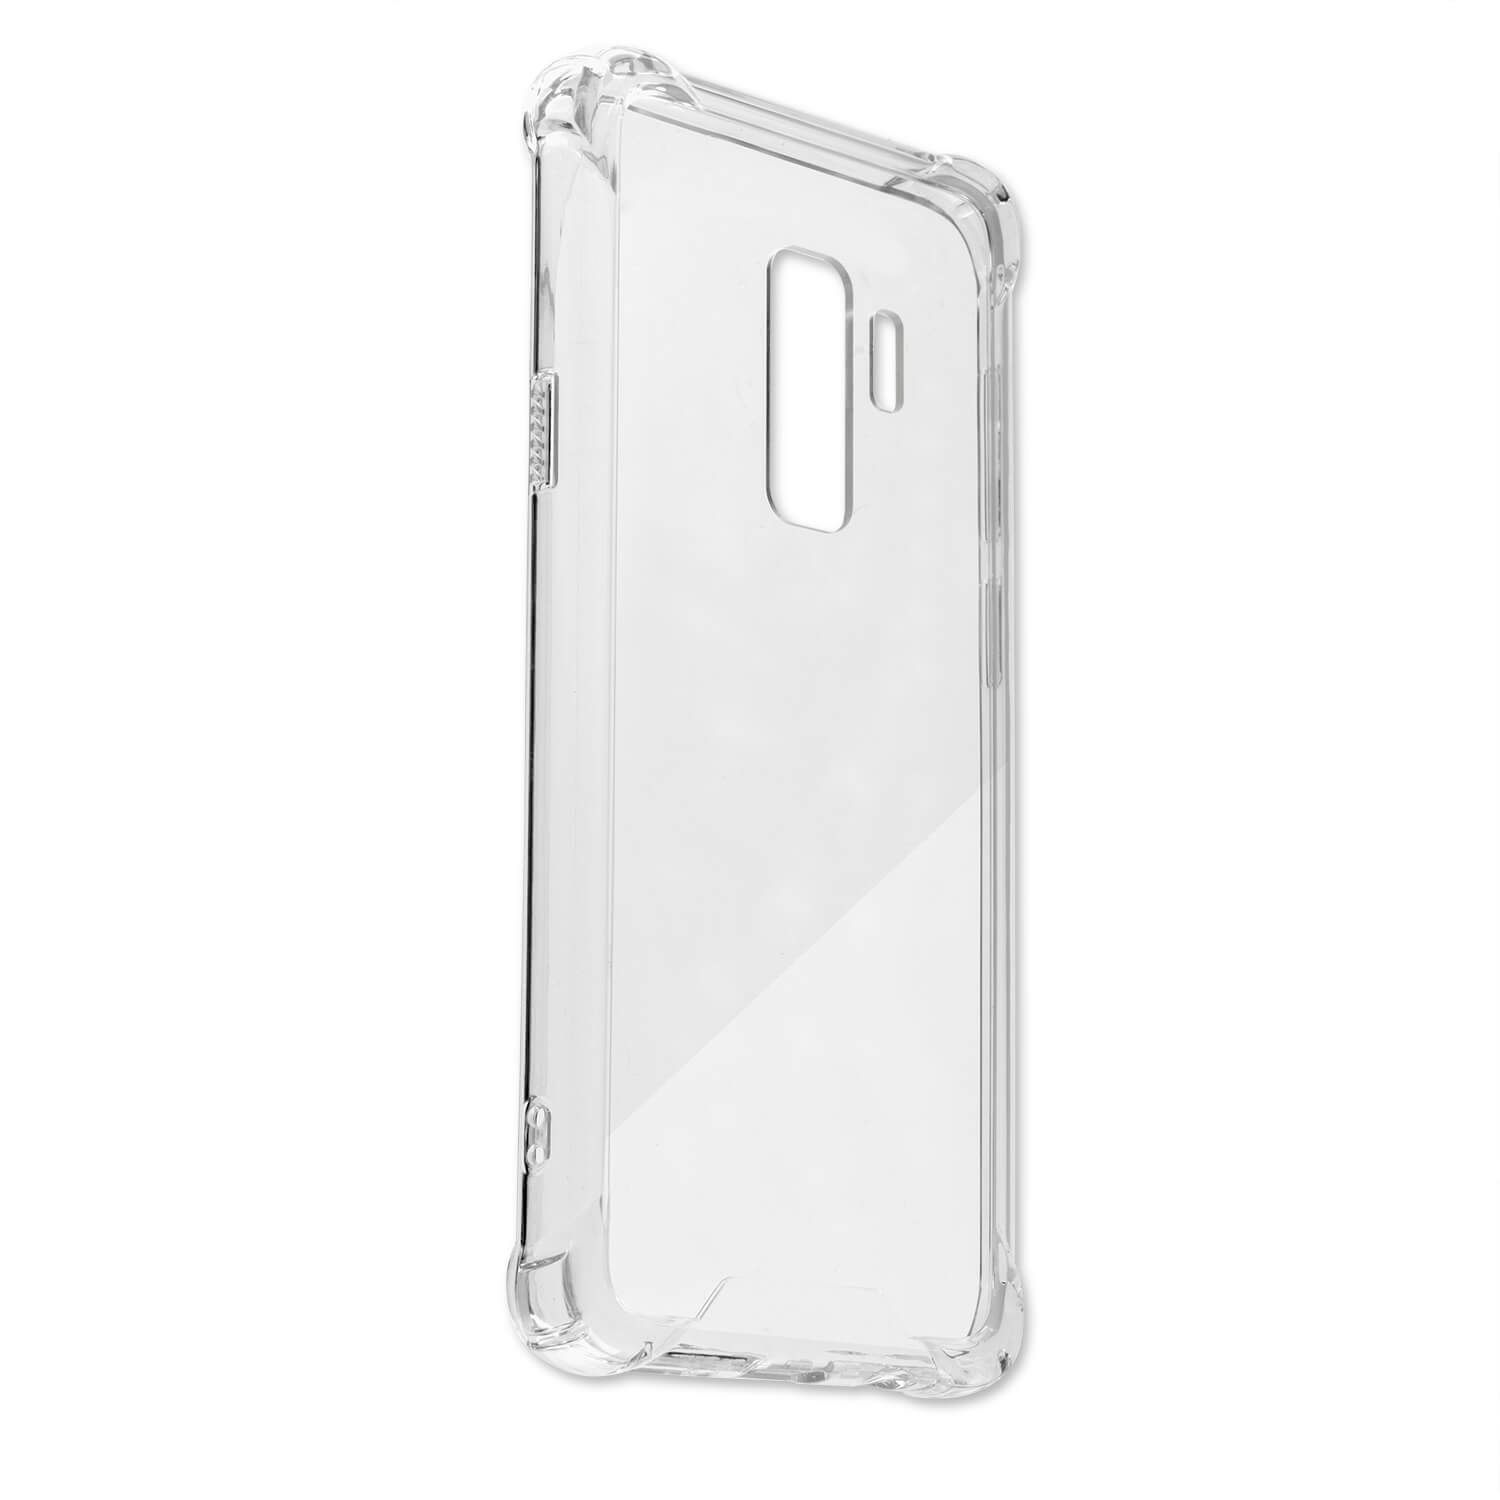 4smarts TPU Hard Cover Case - хибриден кейс за Samusng Galaxy S9 Plus (прозрачен)